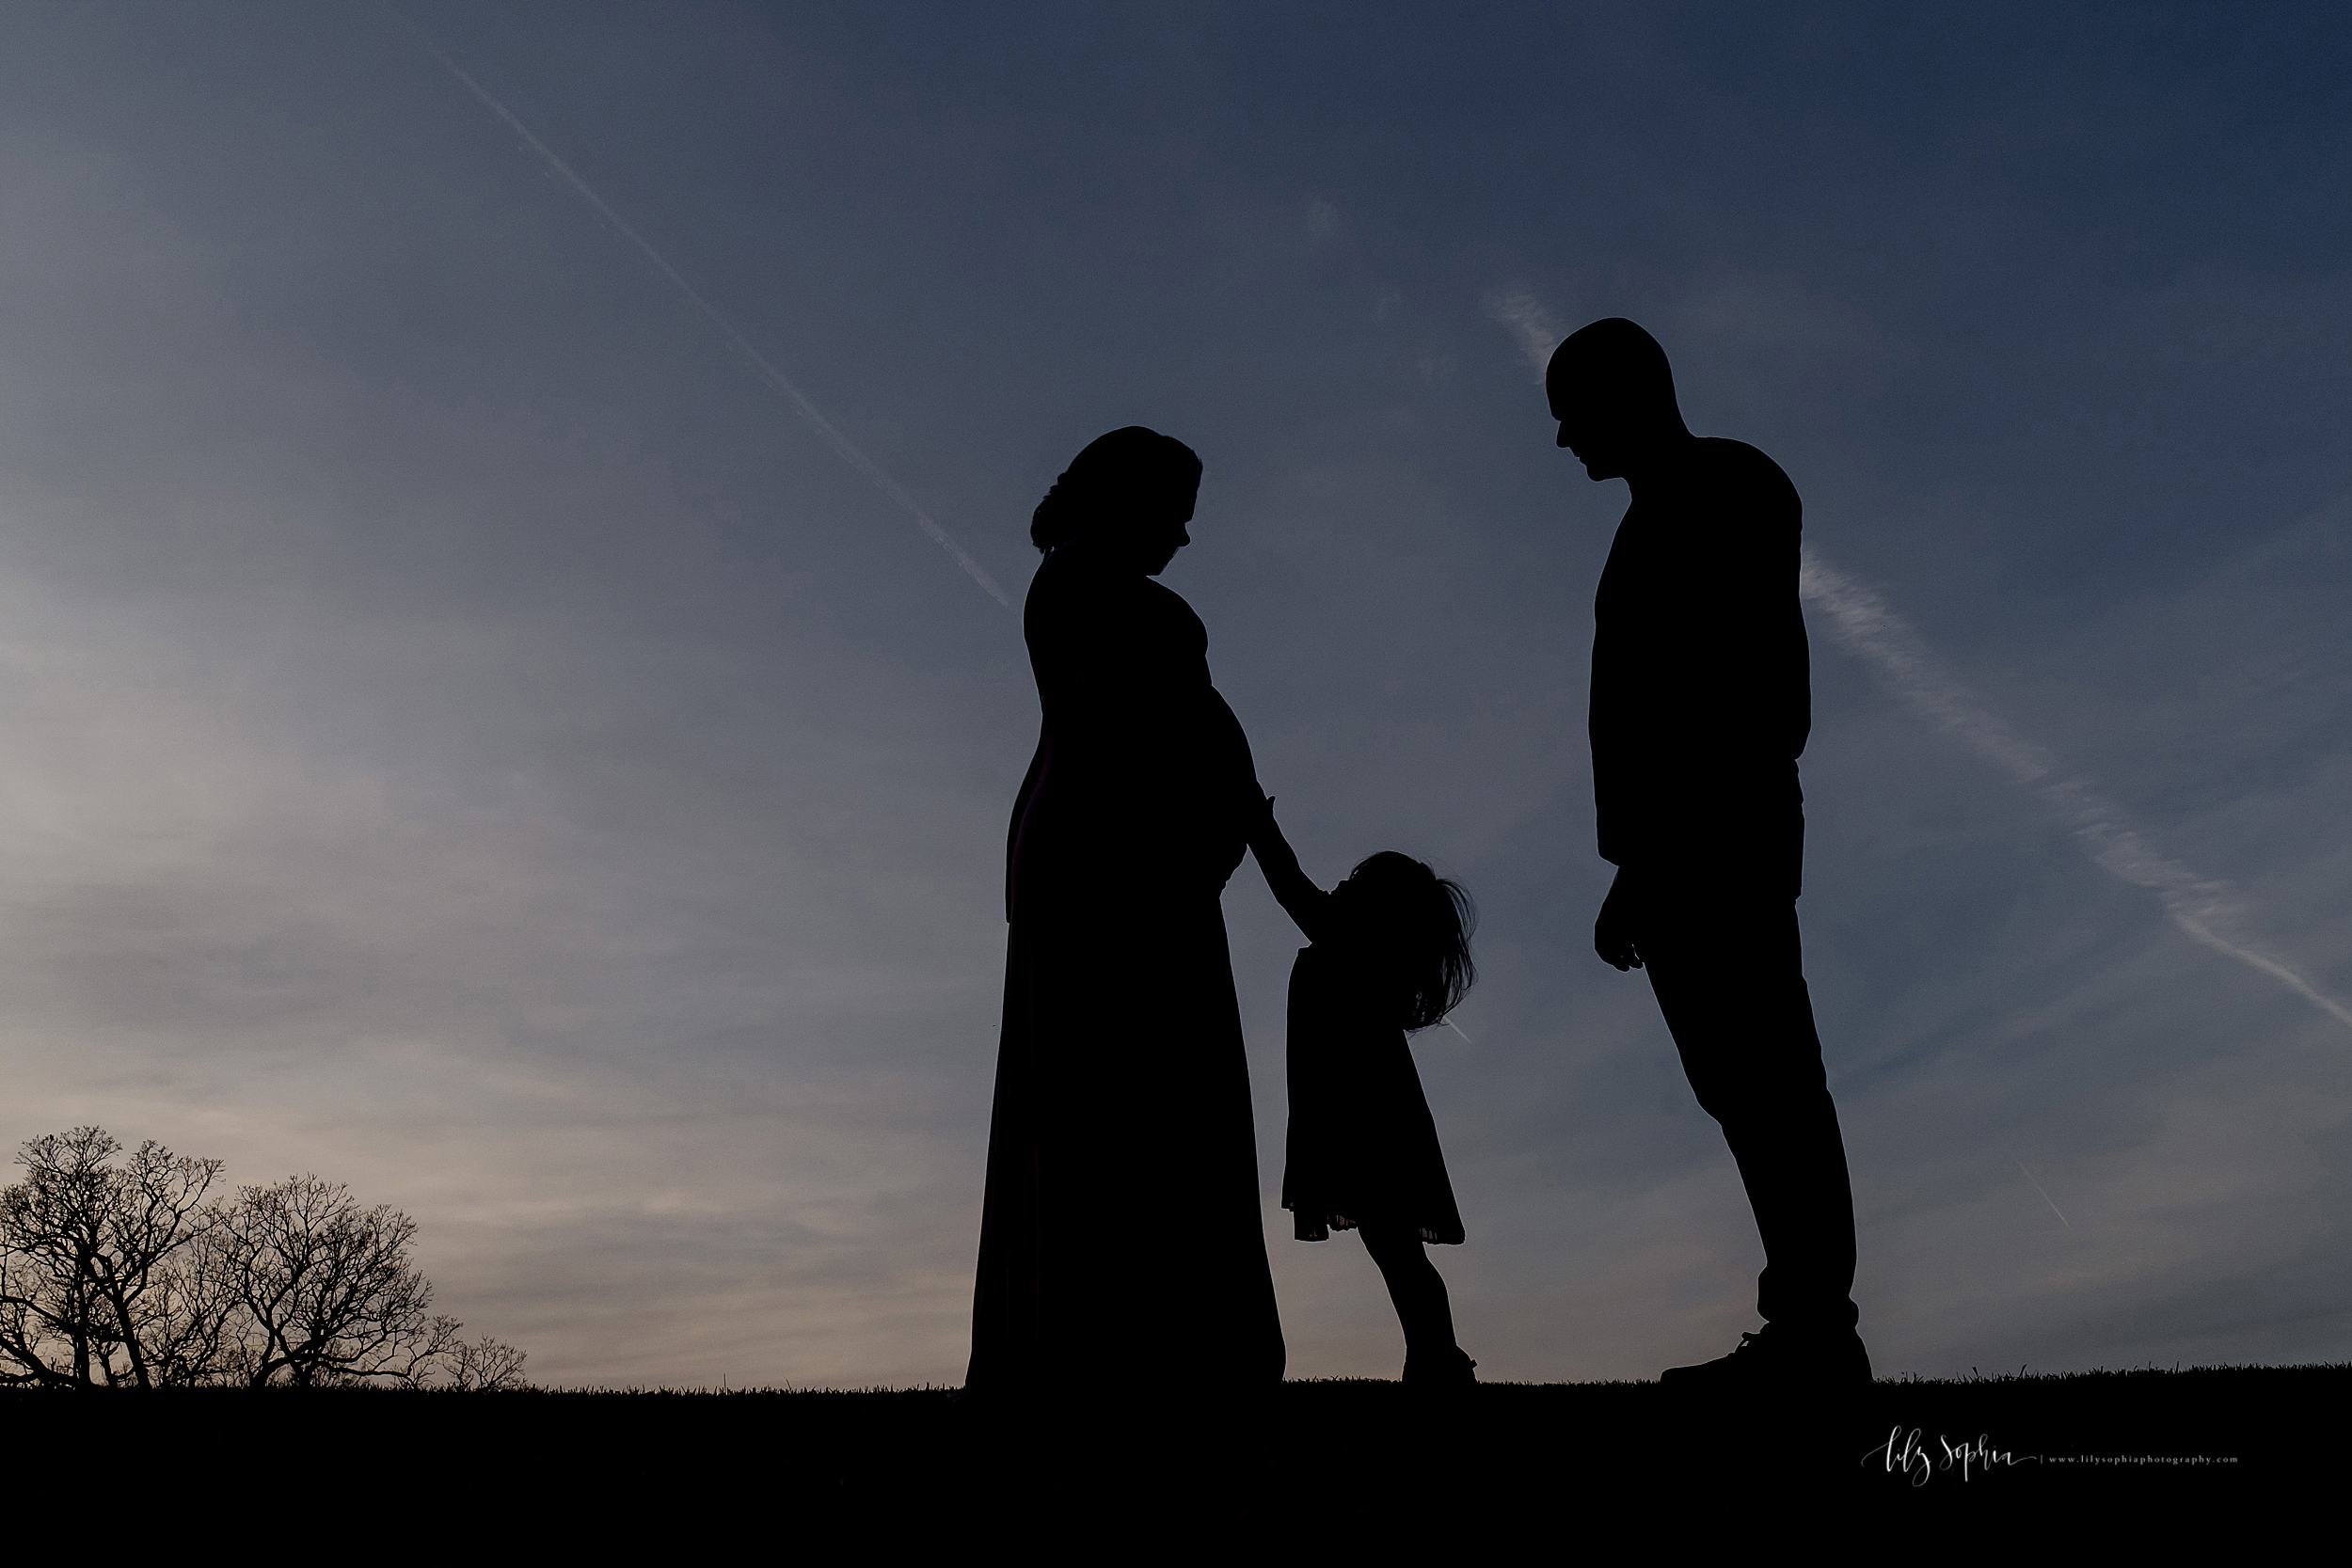 Image of a black silhouette of a family of three and their son in utero standing in a field at sunset.  Their toddler daughter is touching mom's pregnant belly.